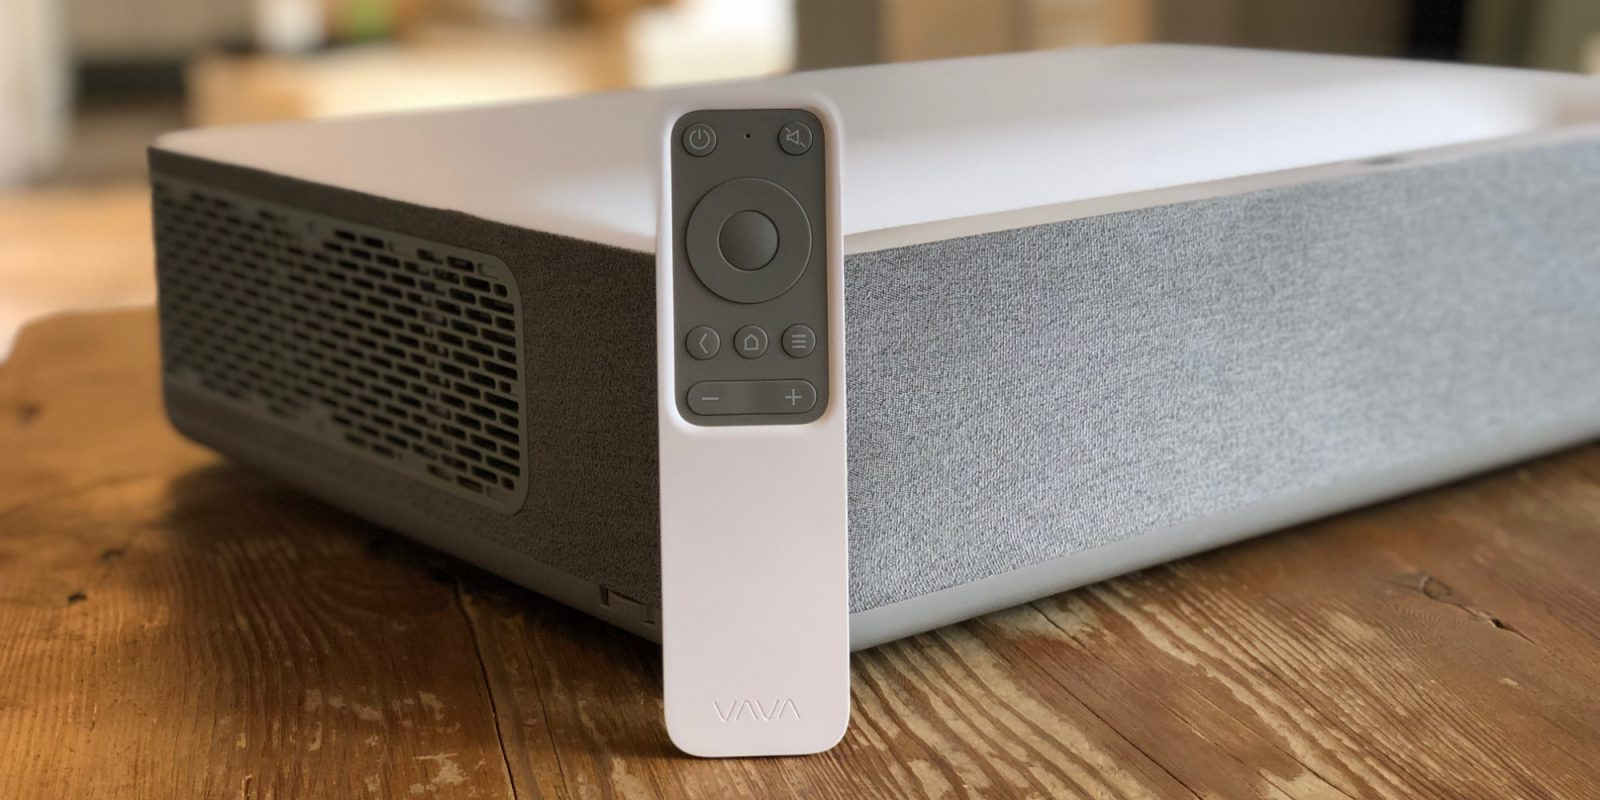 Review: VAVA's 4K Projector is an AiO home theater in a box - 9to5Toys